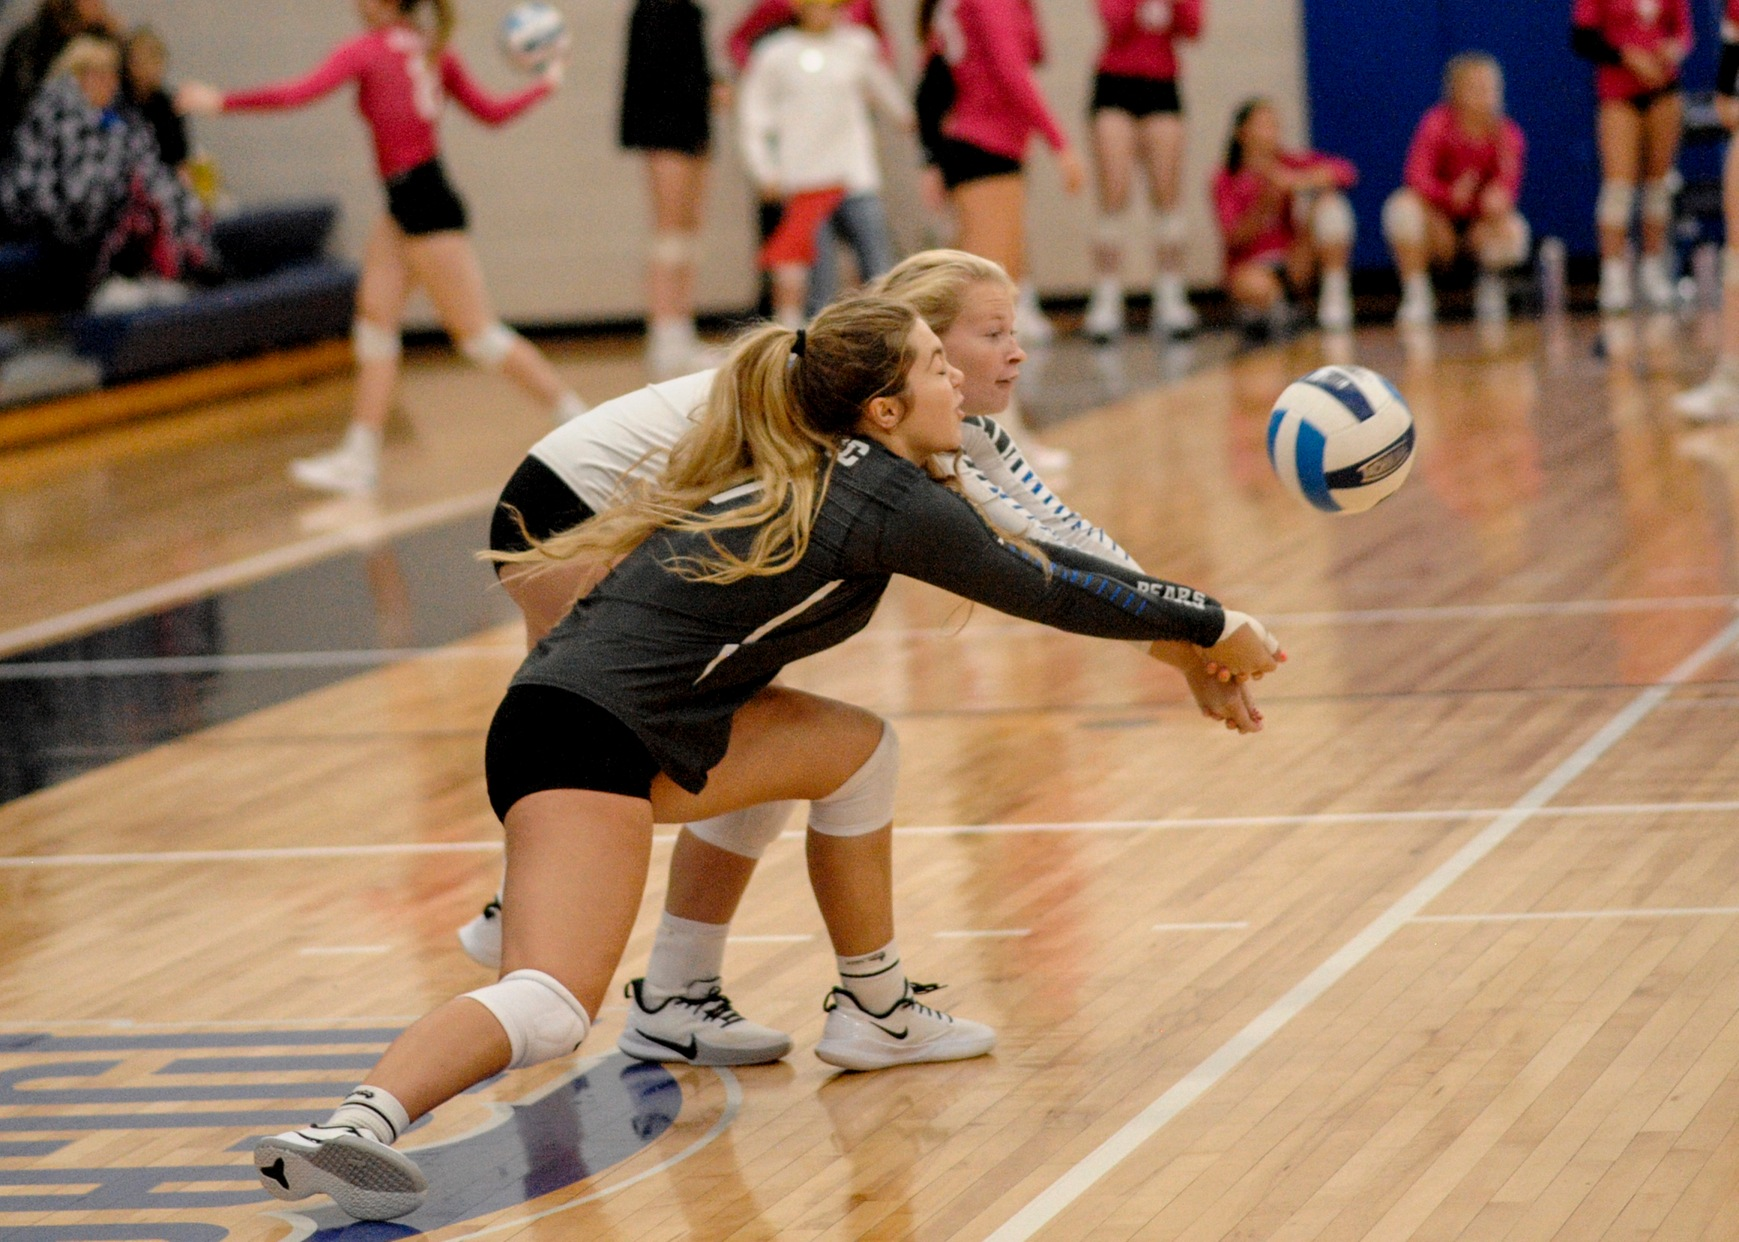 Dilsaver leads DMACC volleyball team past SECC, 3-1